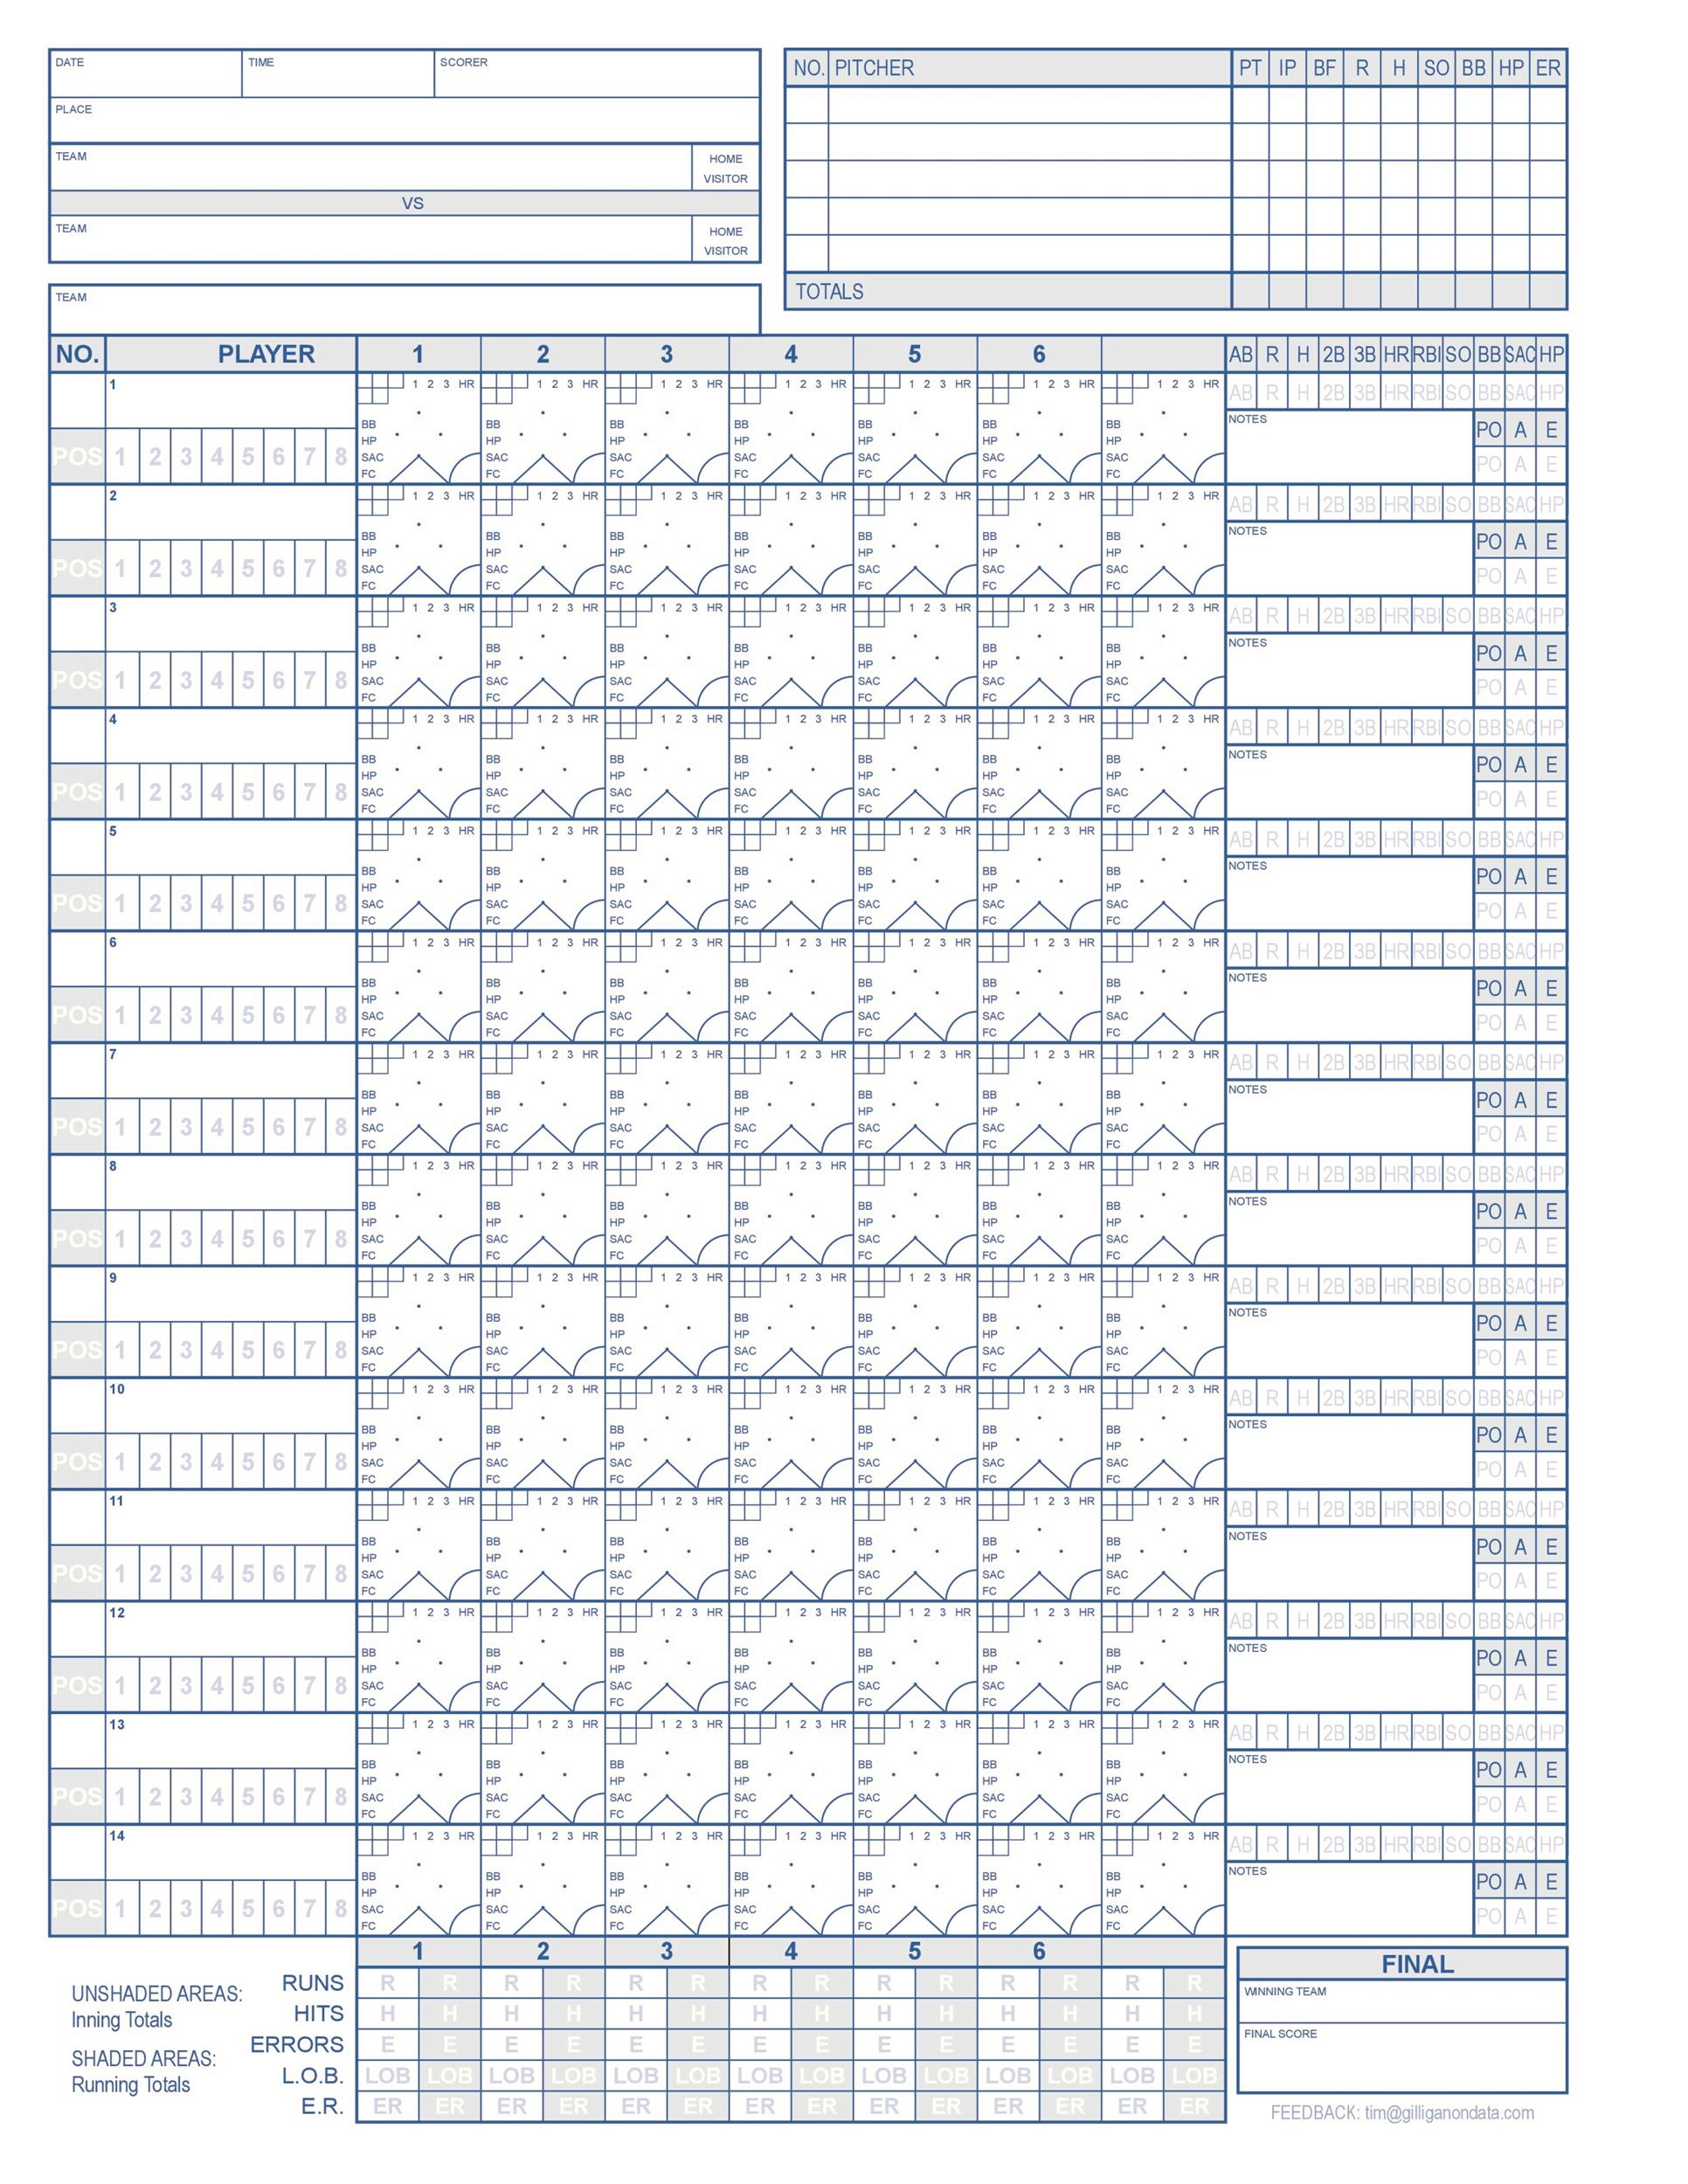 photo relating to Printable Baseball Scoresheet named 30+ Printable Baseball Scoresheet / Scorecard Templates ᐅ